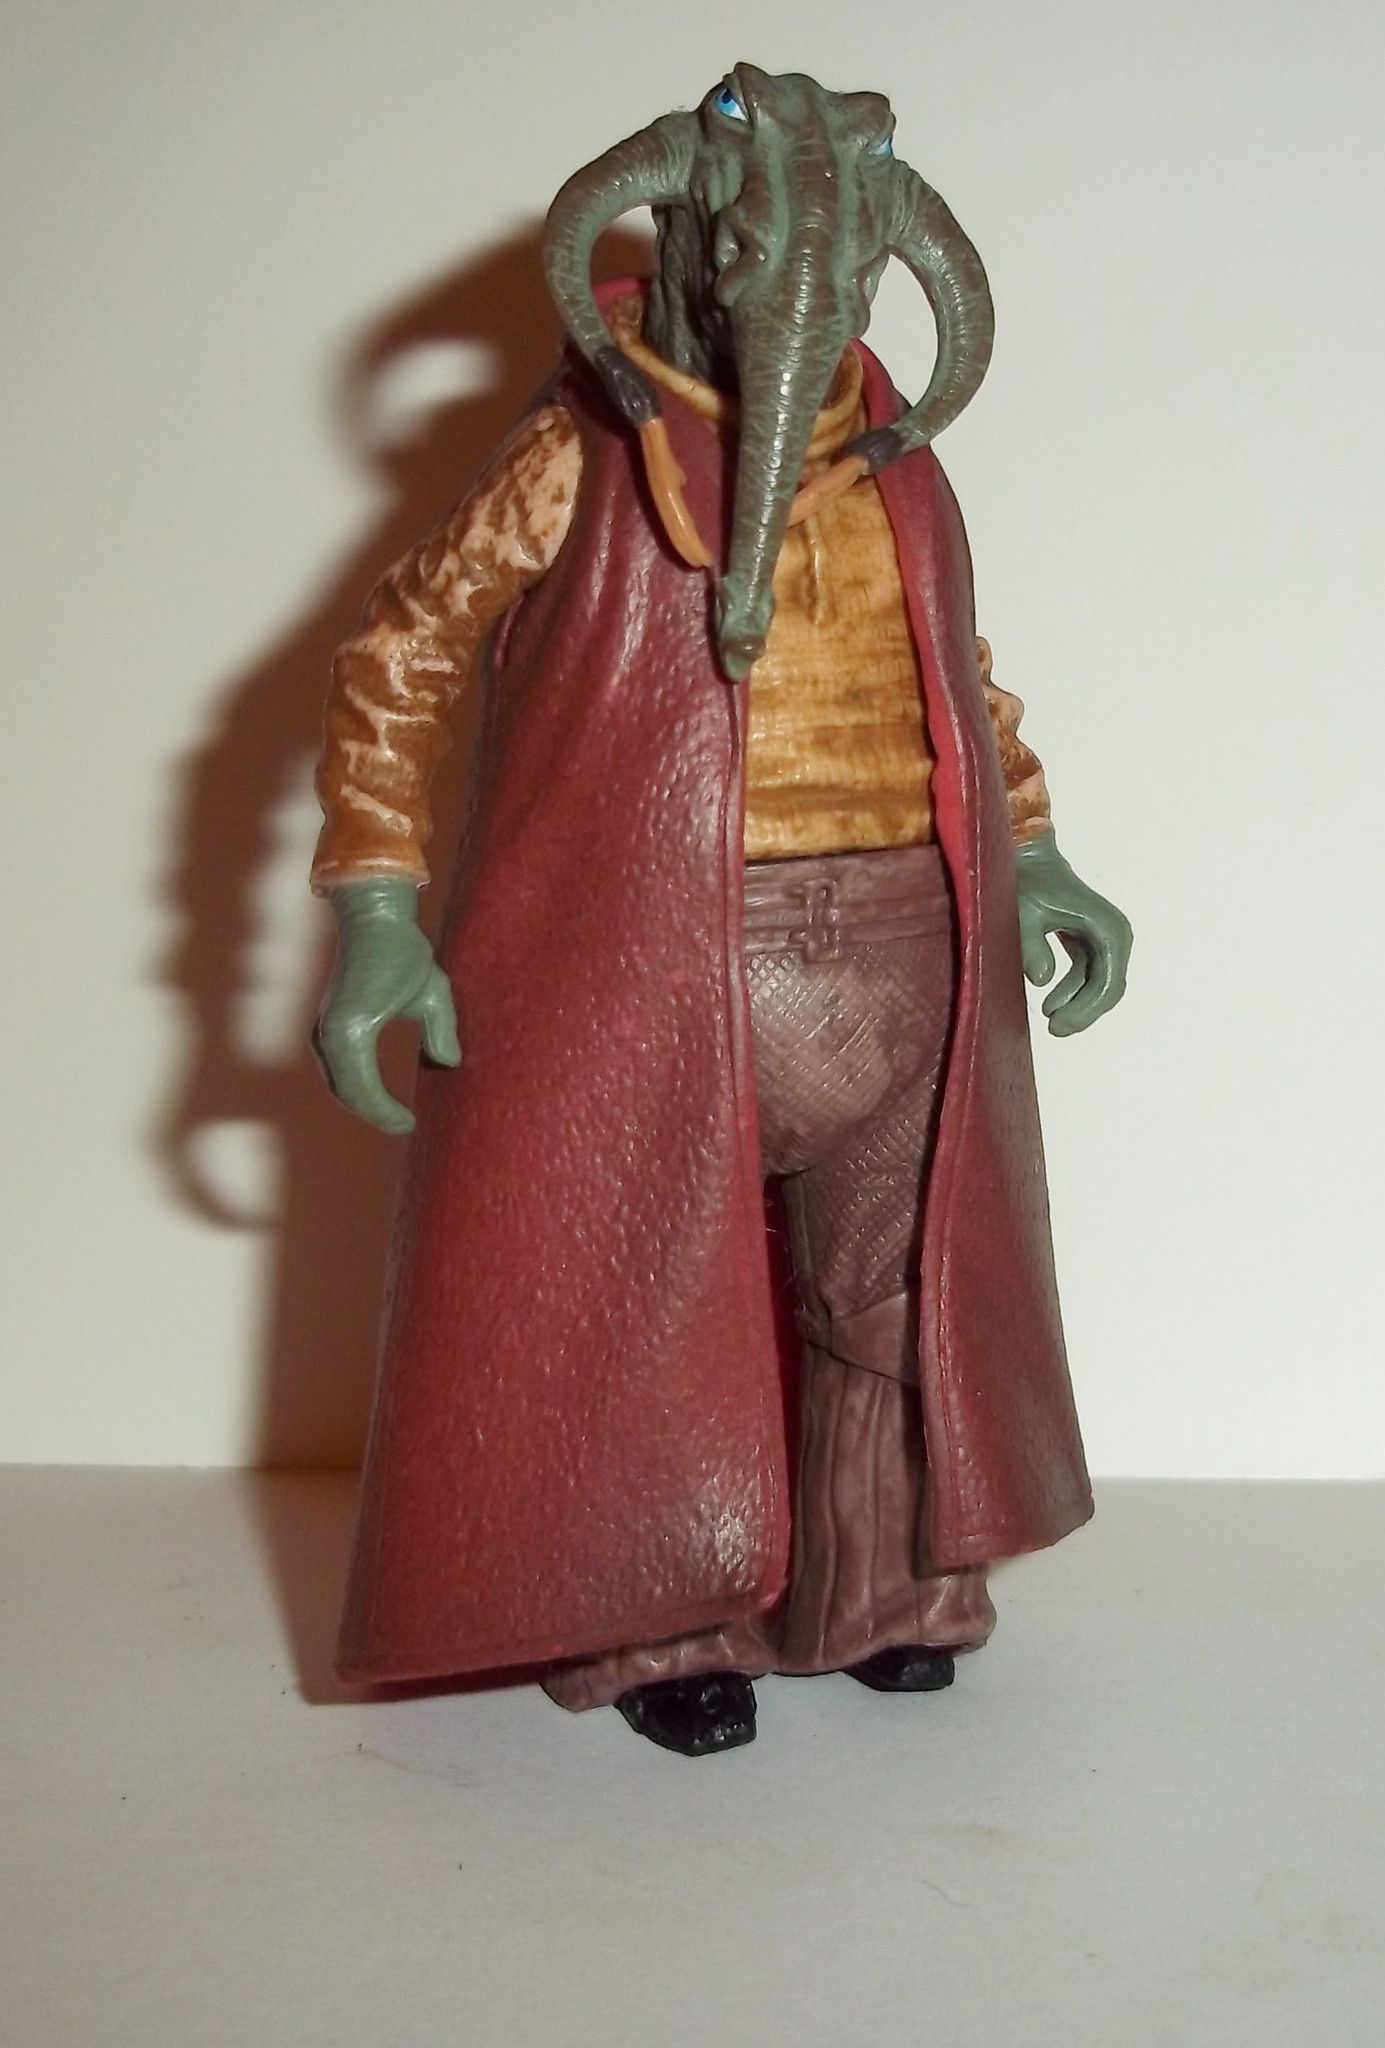 star wars action figures KETWOL power of the jedi 2000